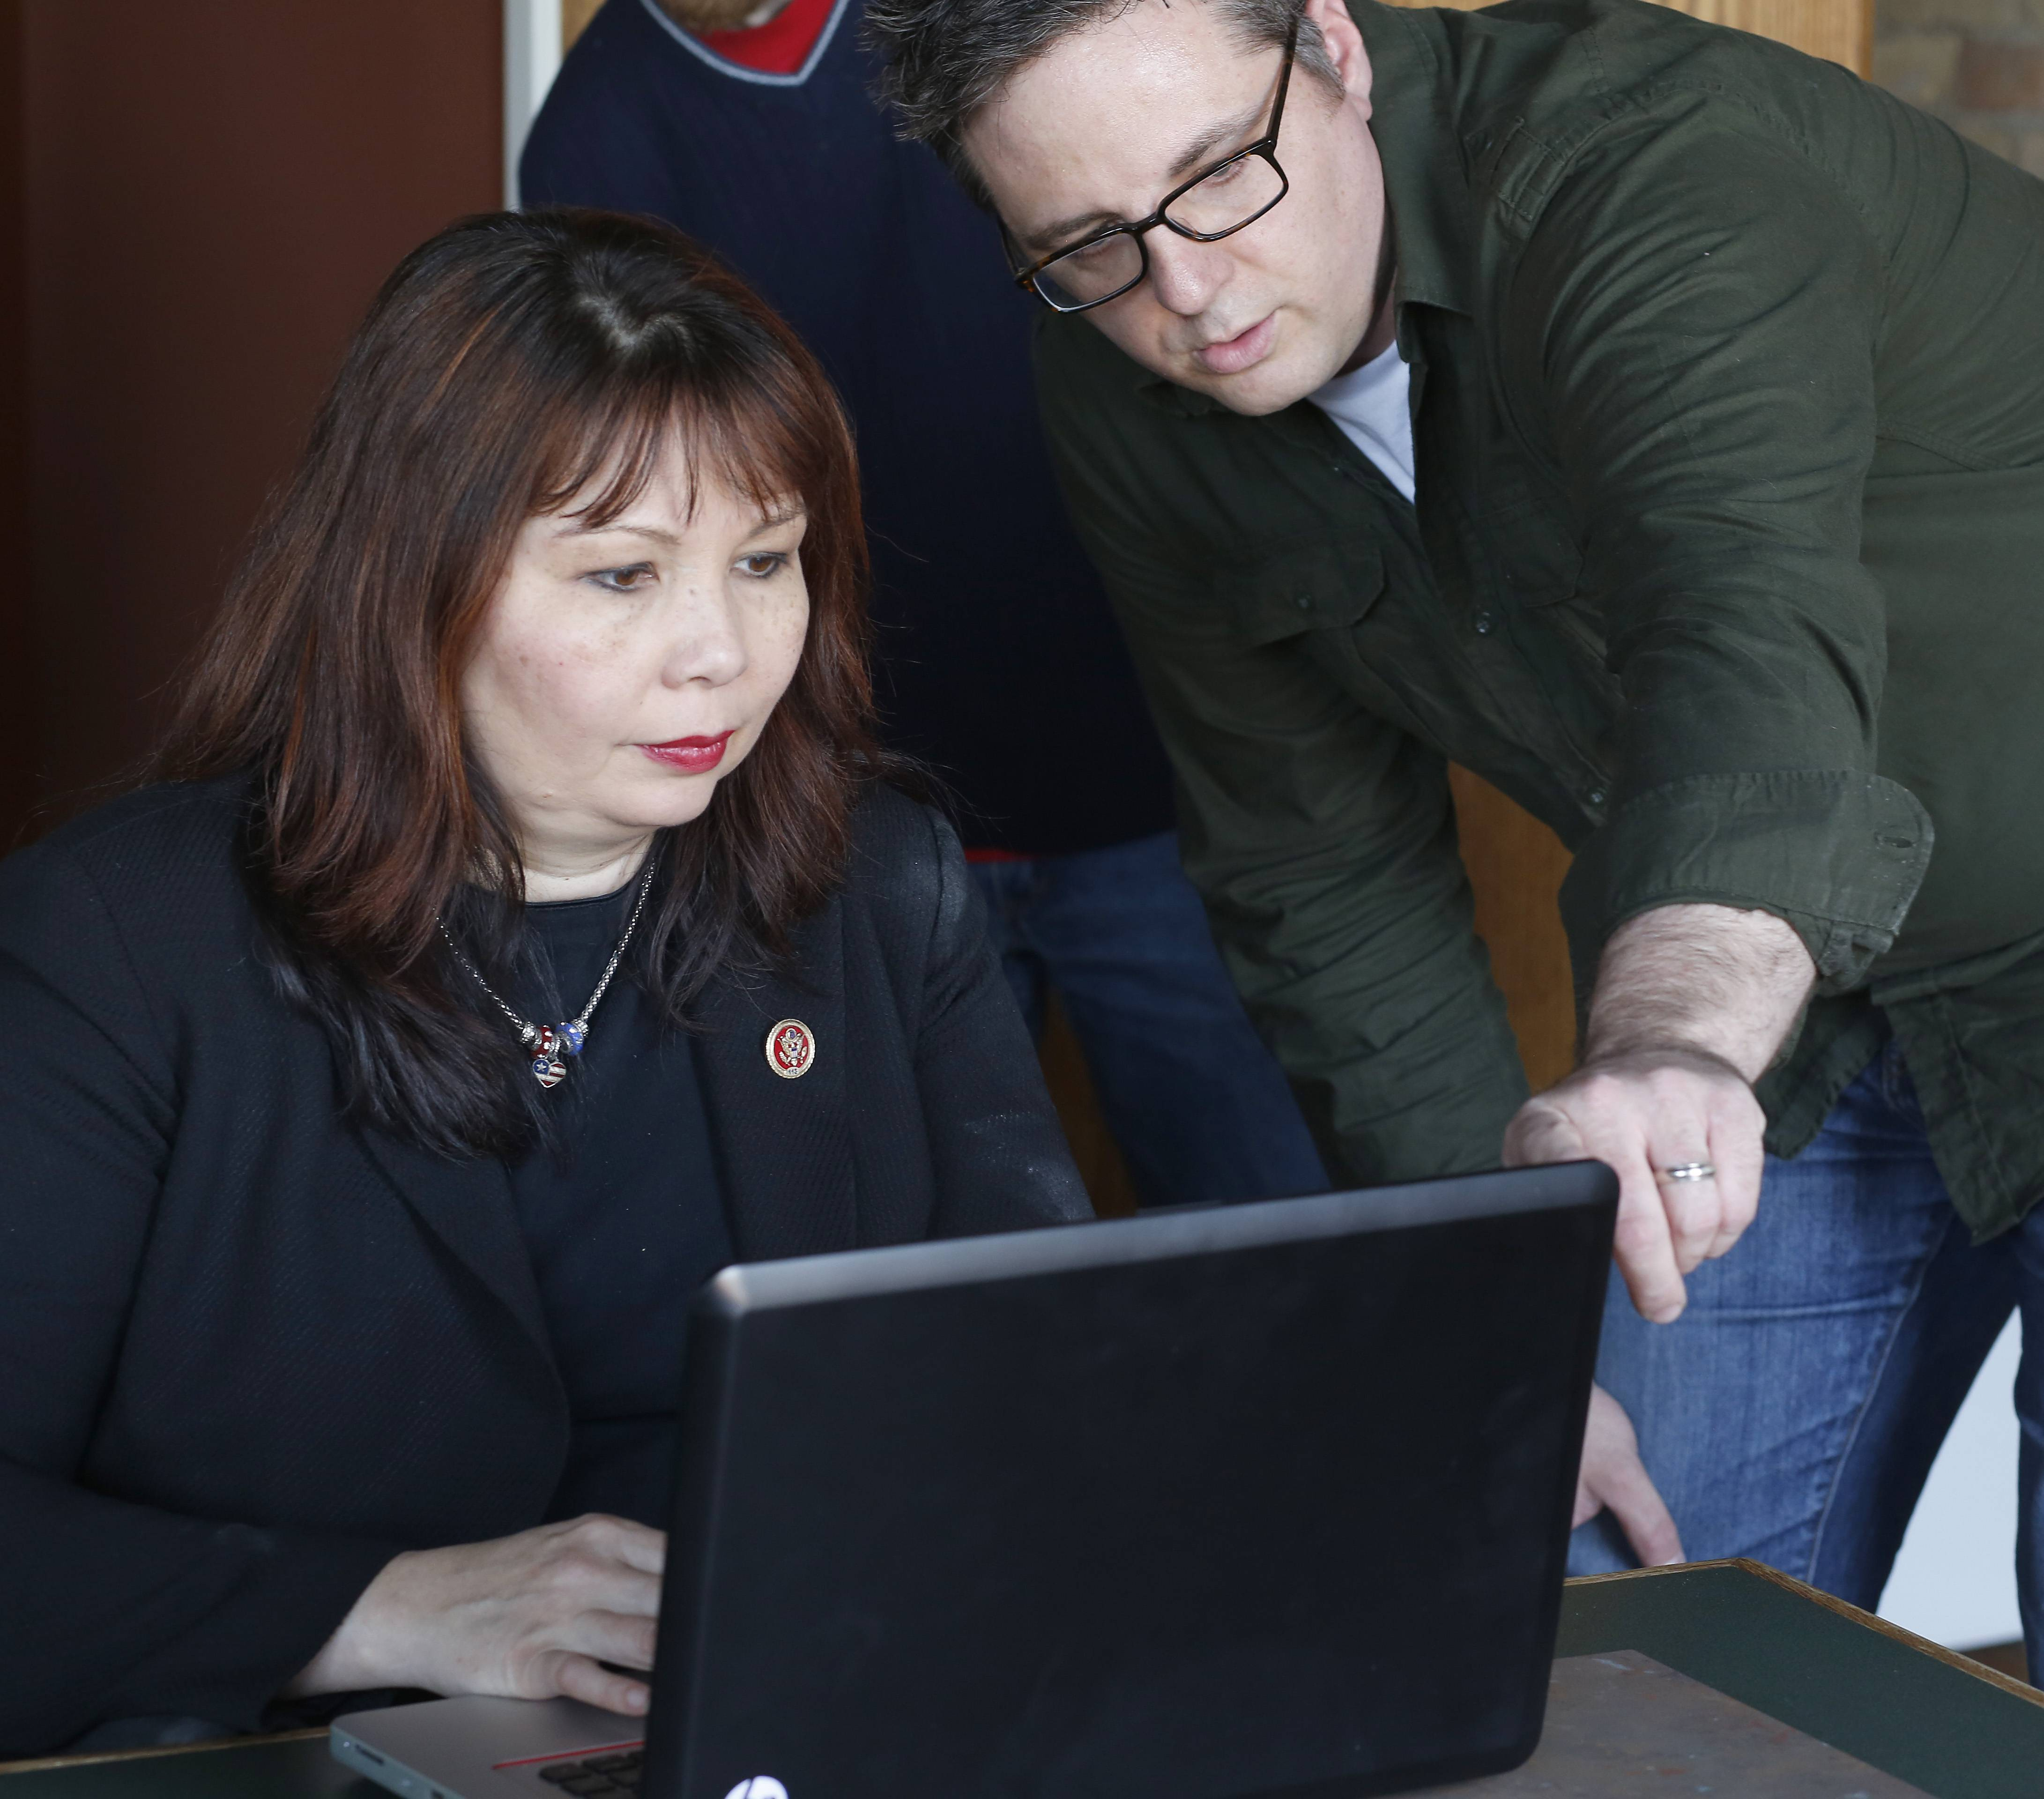 James Stubblefield, educational director for the Elgin Technology Center, shows U.S. Rep. Tammy Duckworth how to code an app Wednesday.